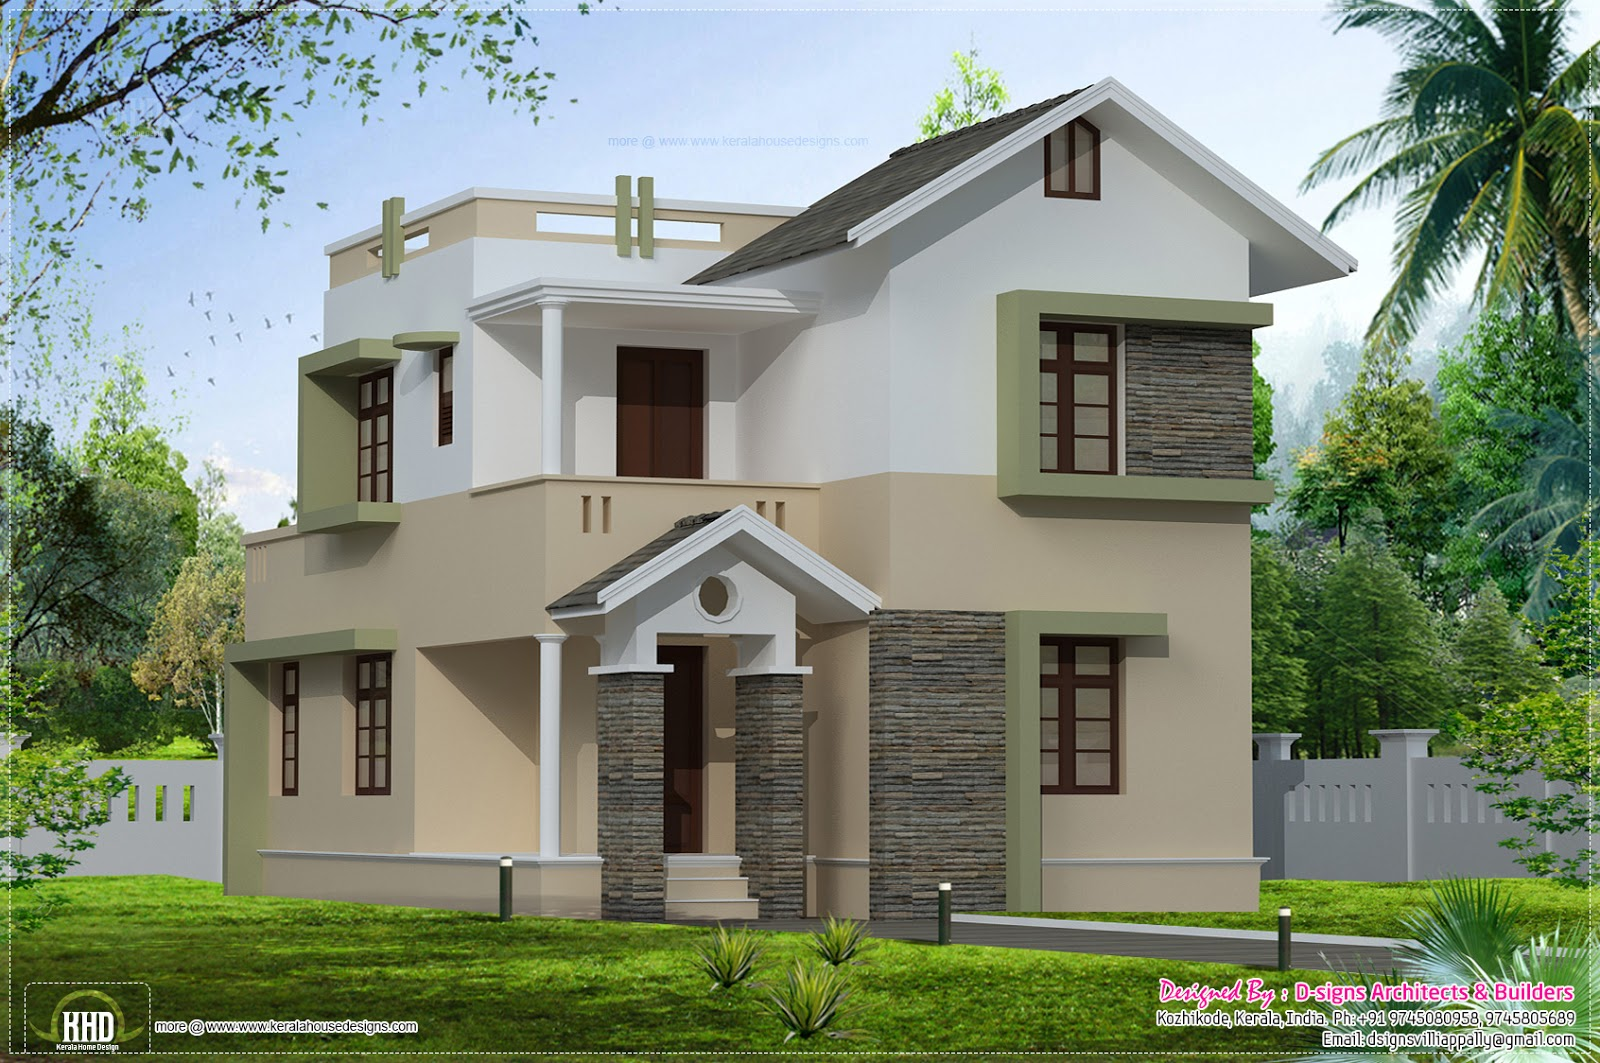 Front elevation of small houses home design and decor for Small house design in kerala